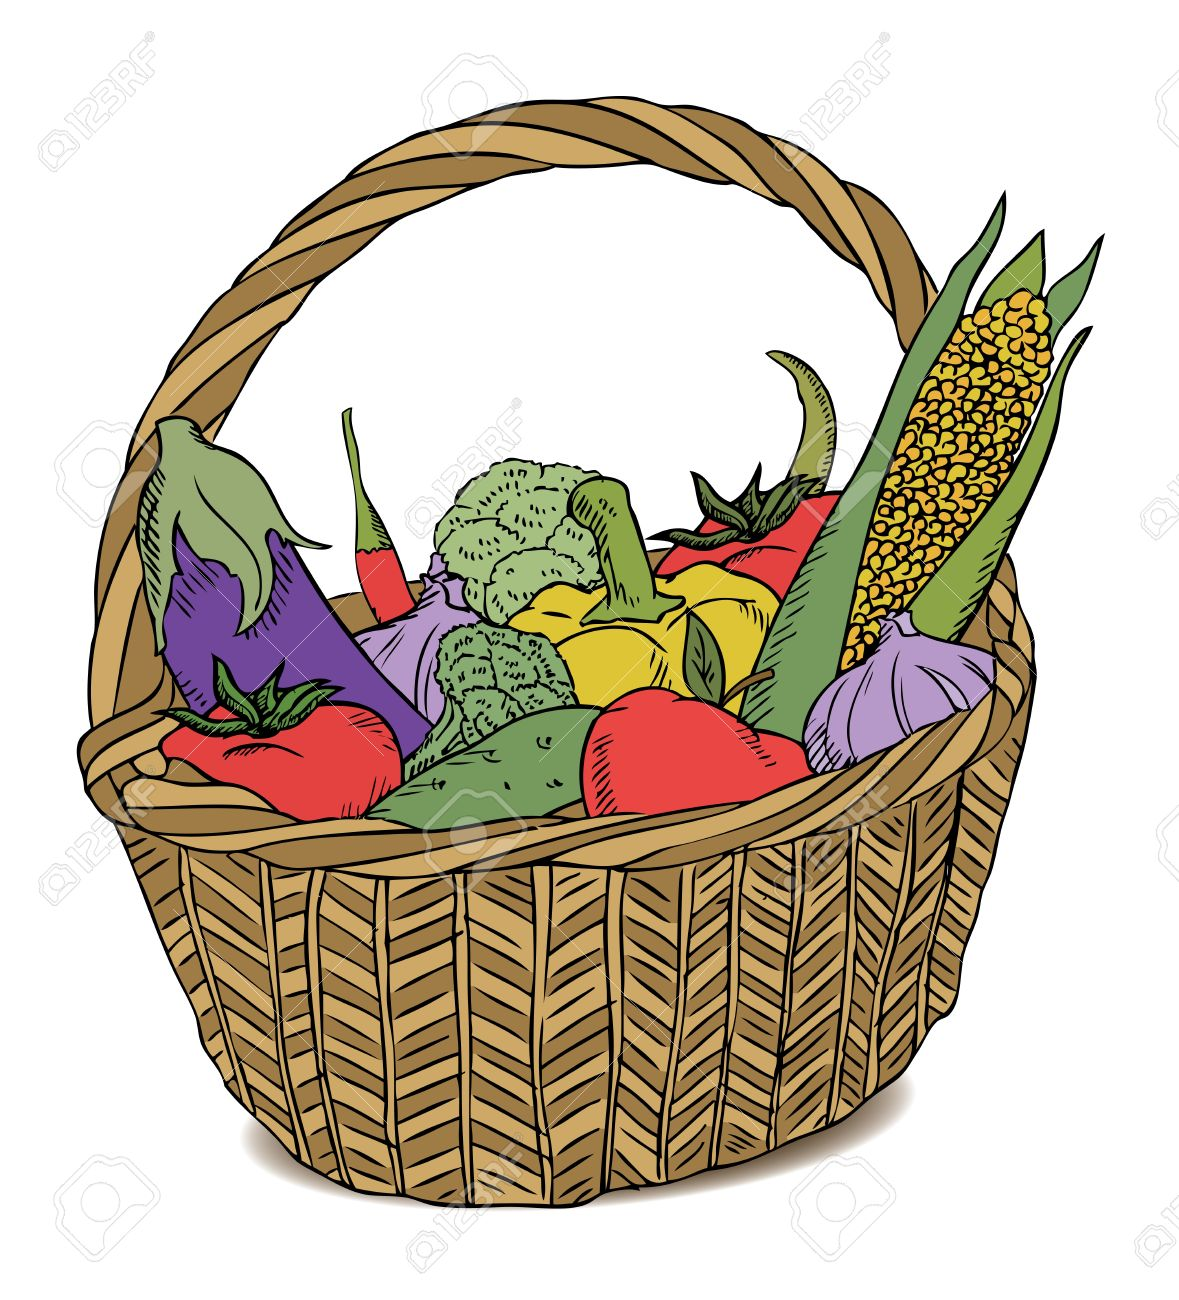 1179x1300 Basket With Different Vegetables Color Royalty Free Cliparts